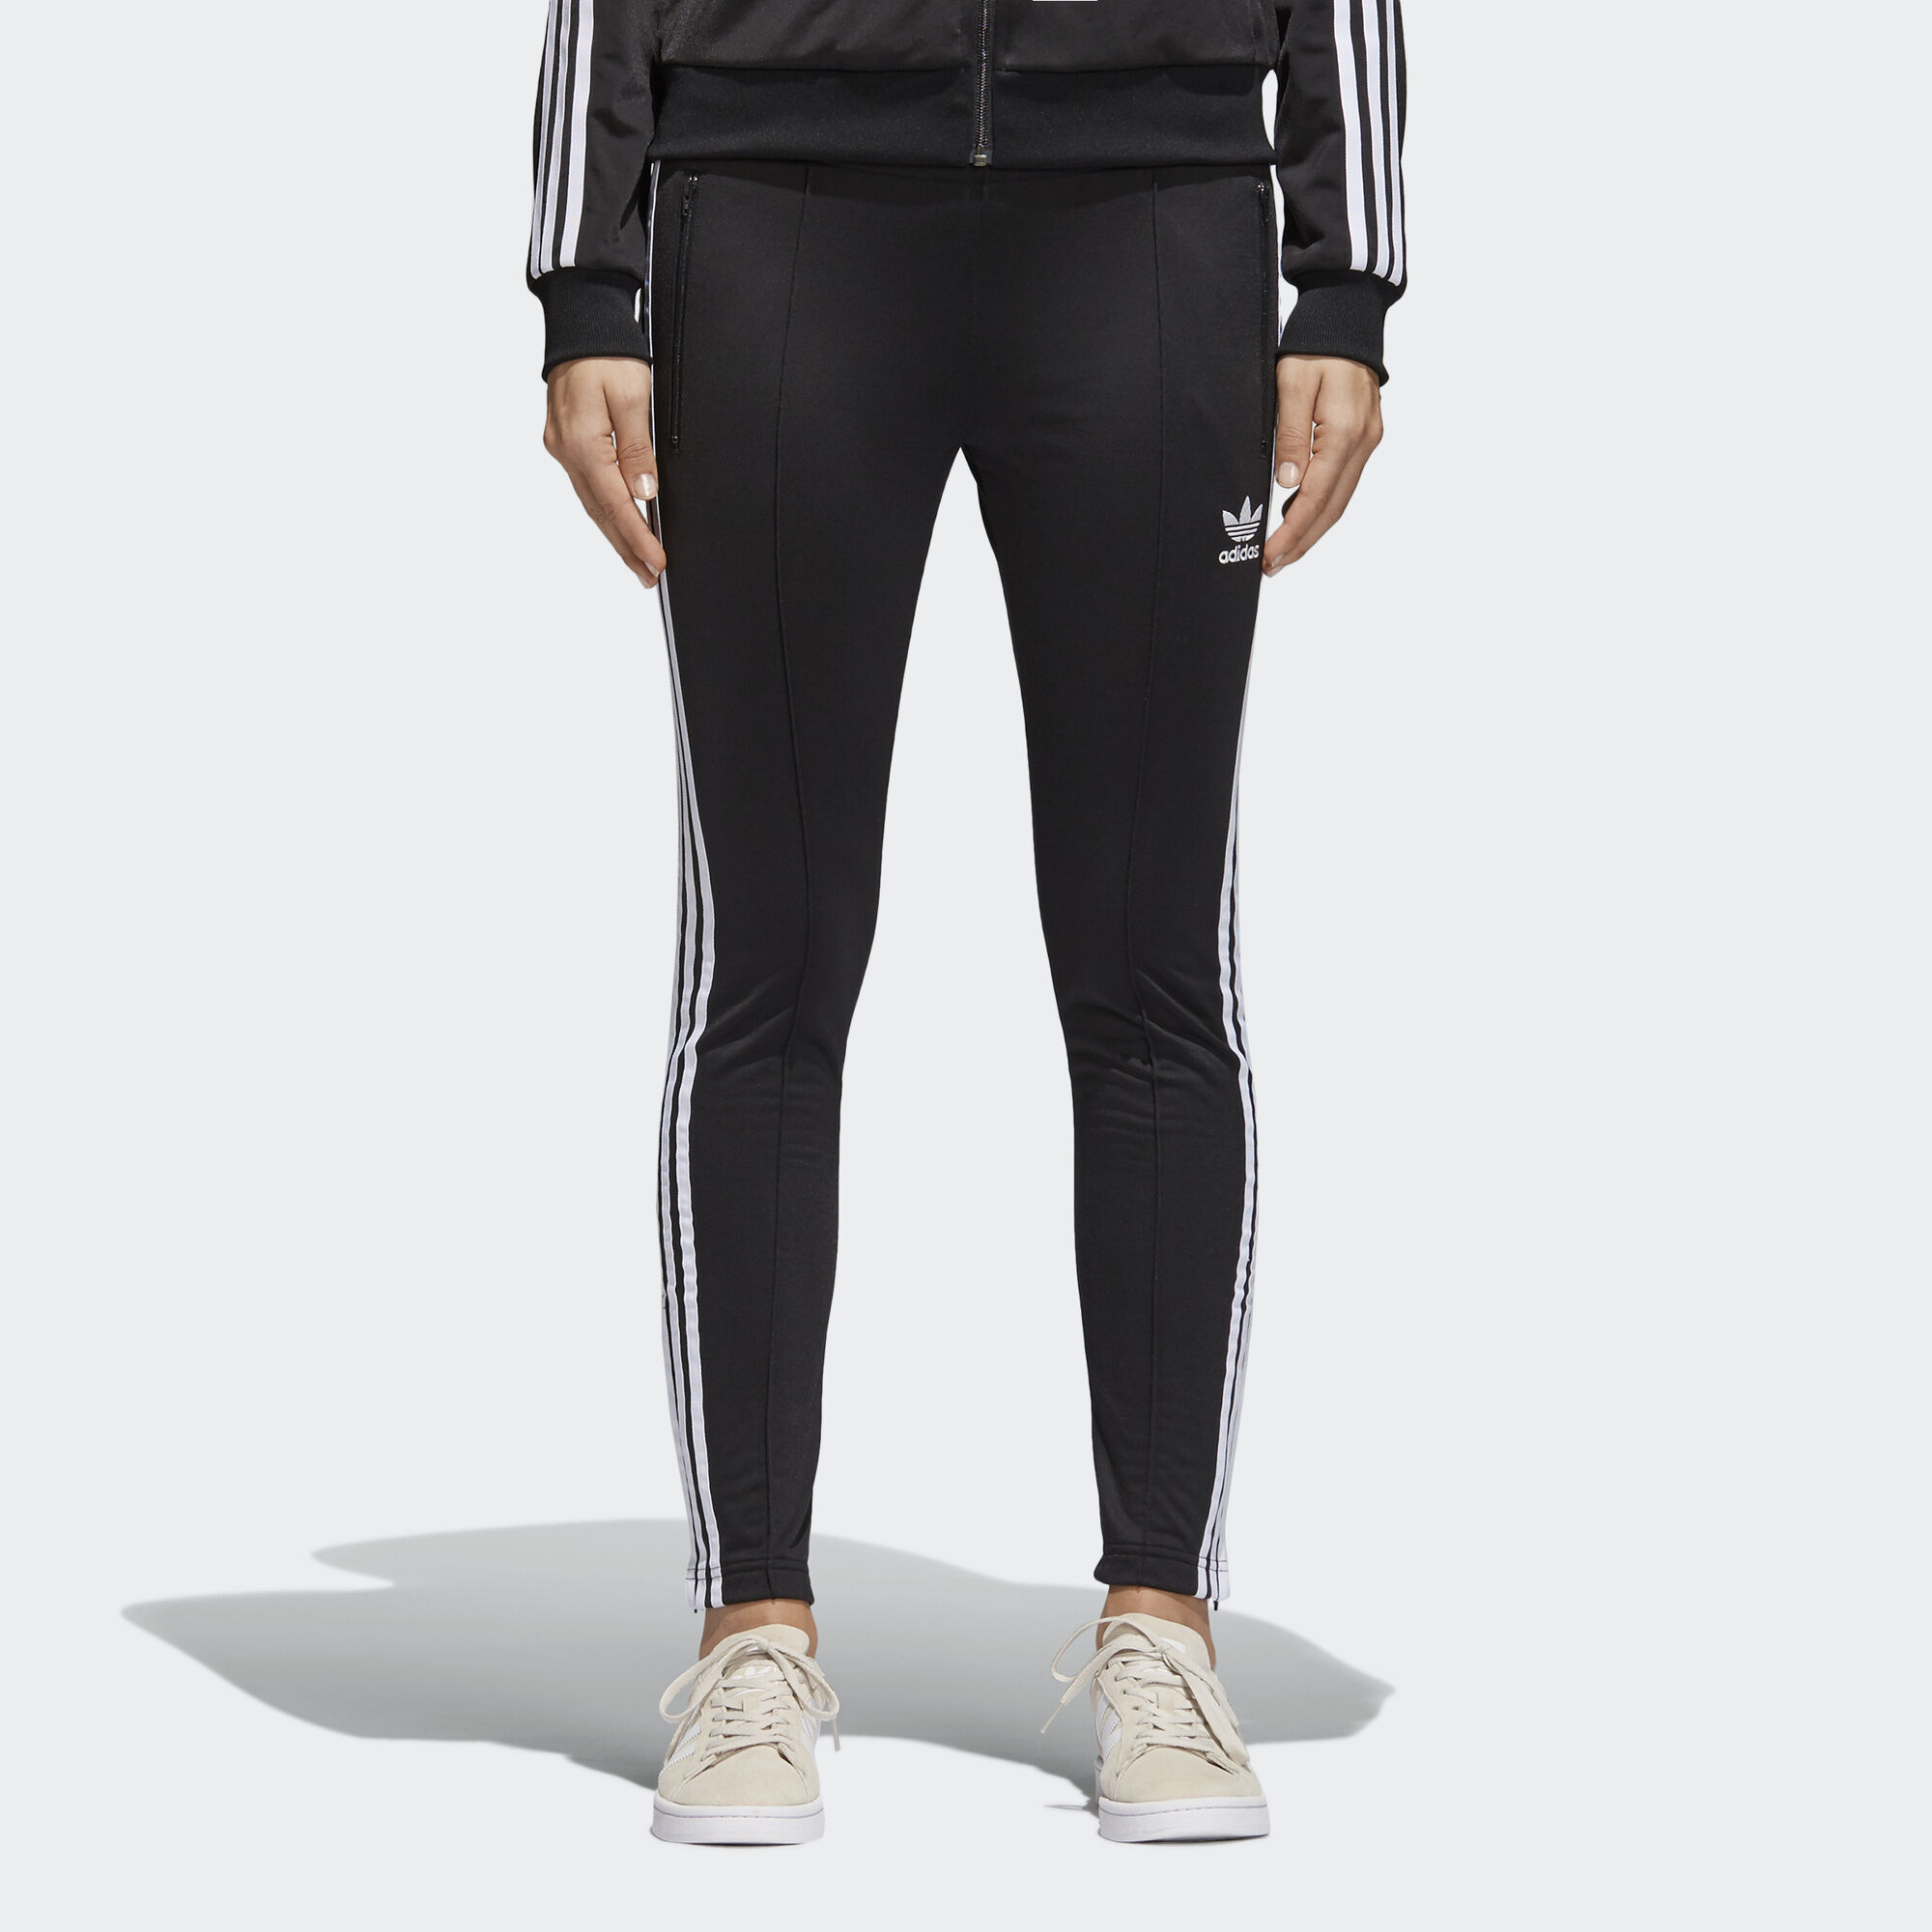 Adidas Originals Blouson Damen